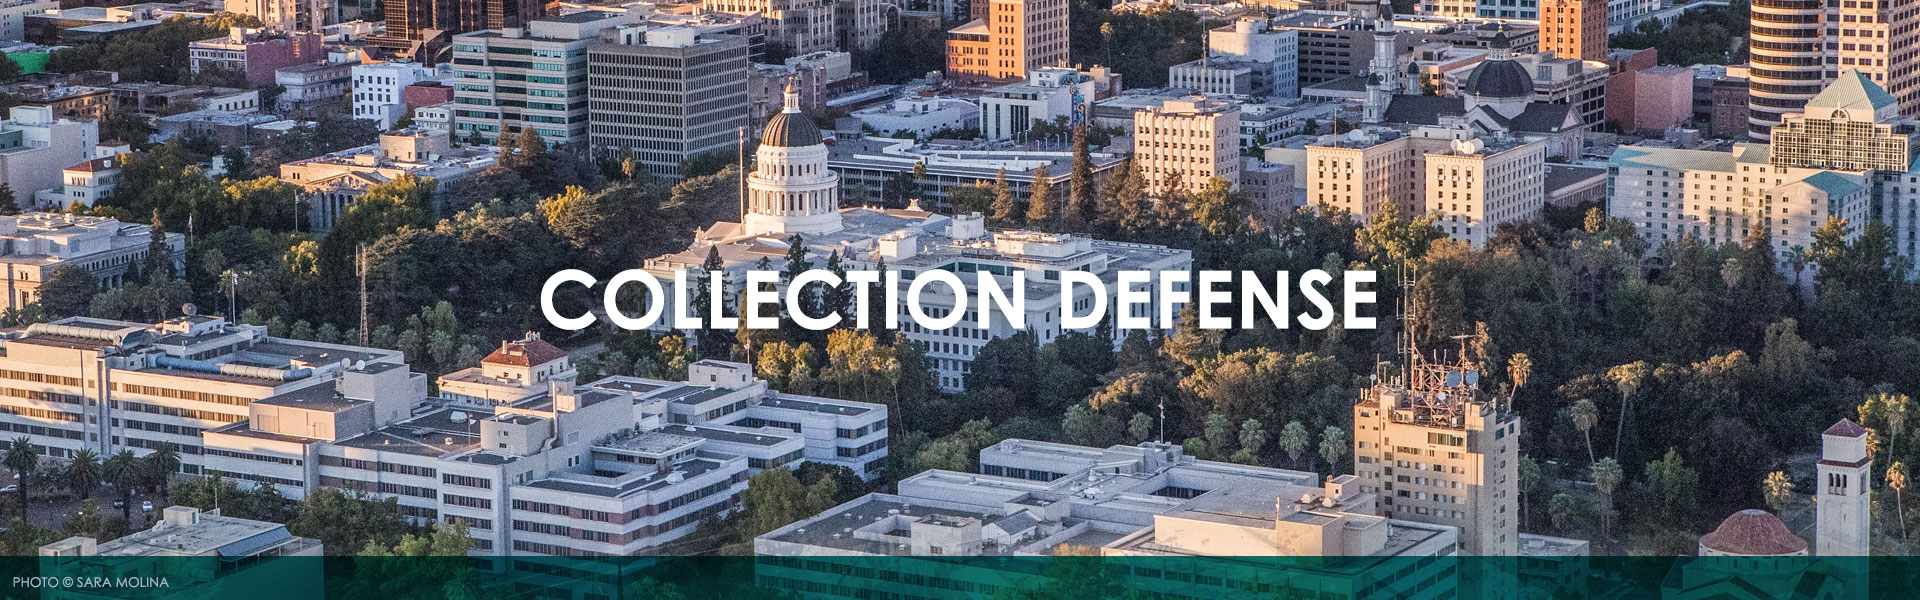 Amberg Harvey CollectionDefense